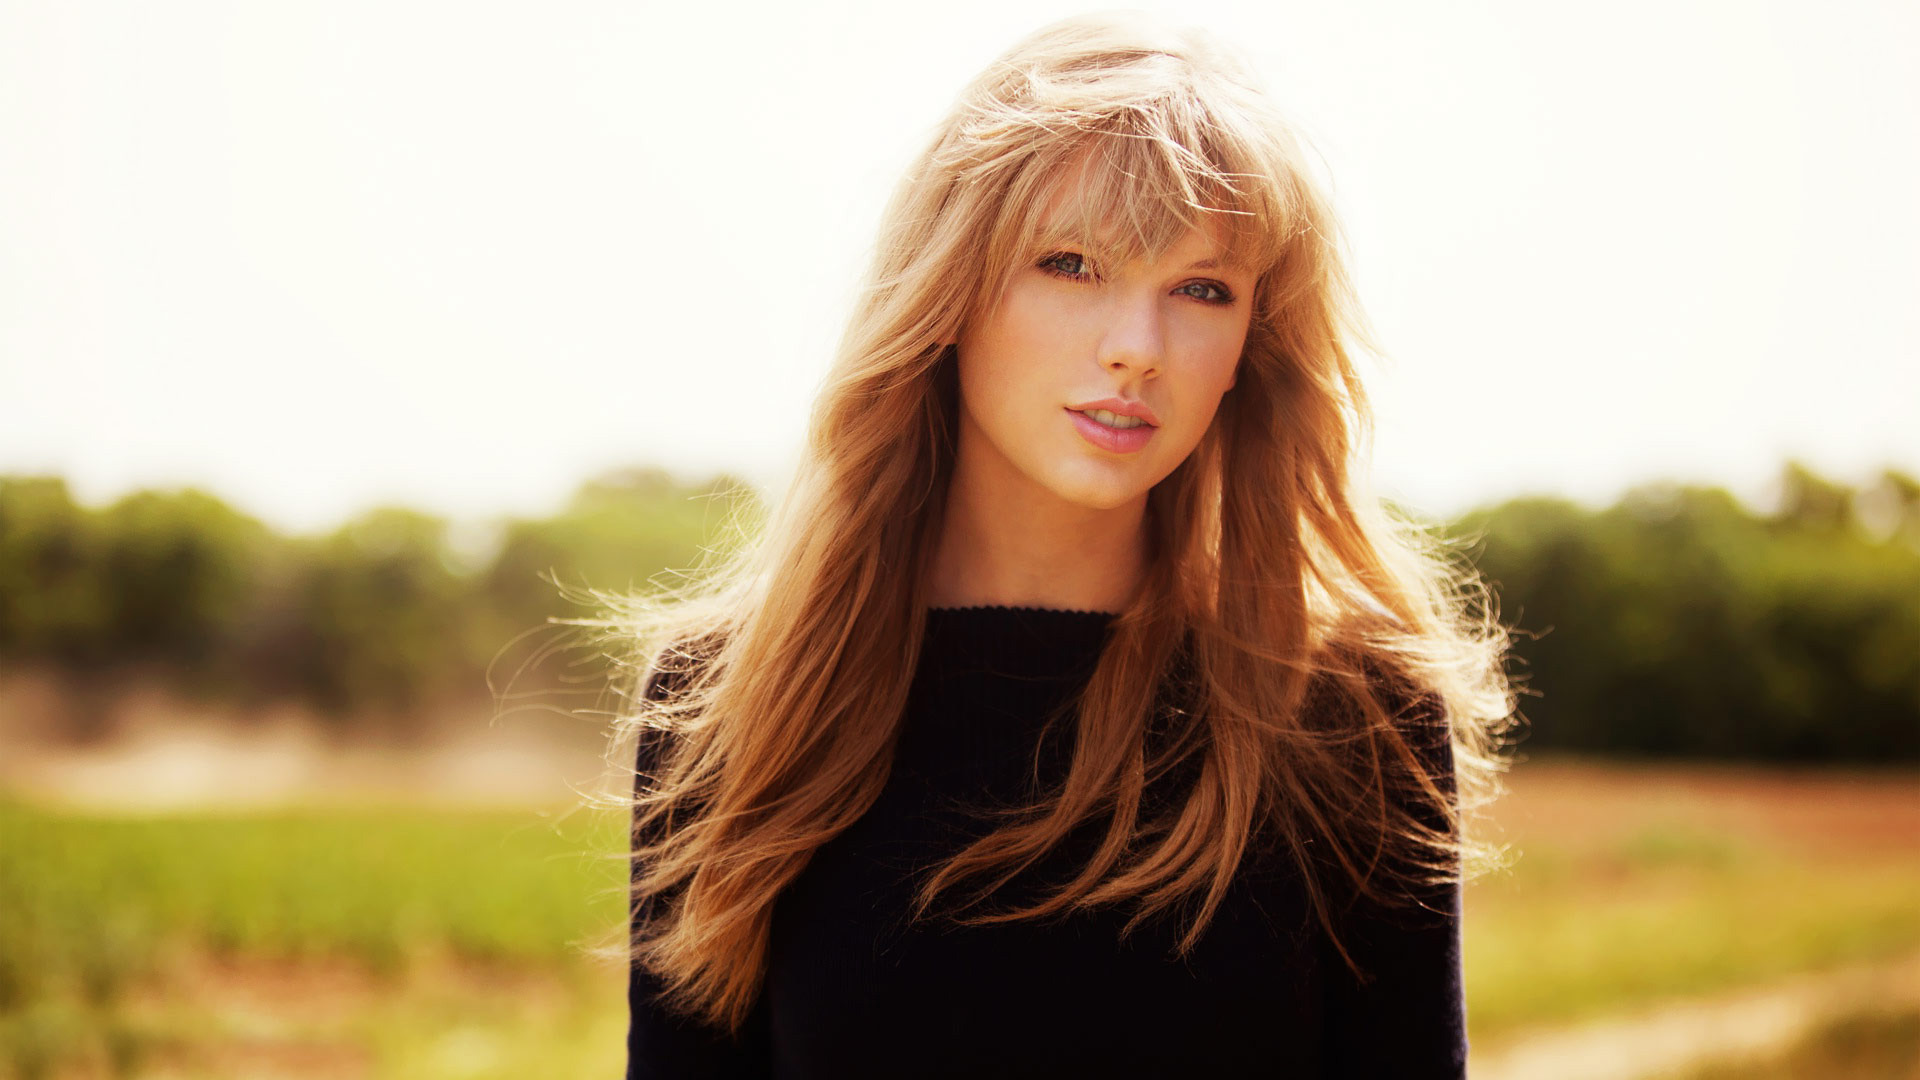 Taylor Swift Photo   Wallpaper High Definition High 1920x1080